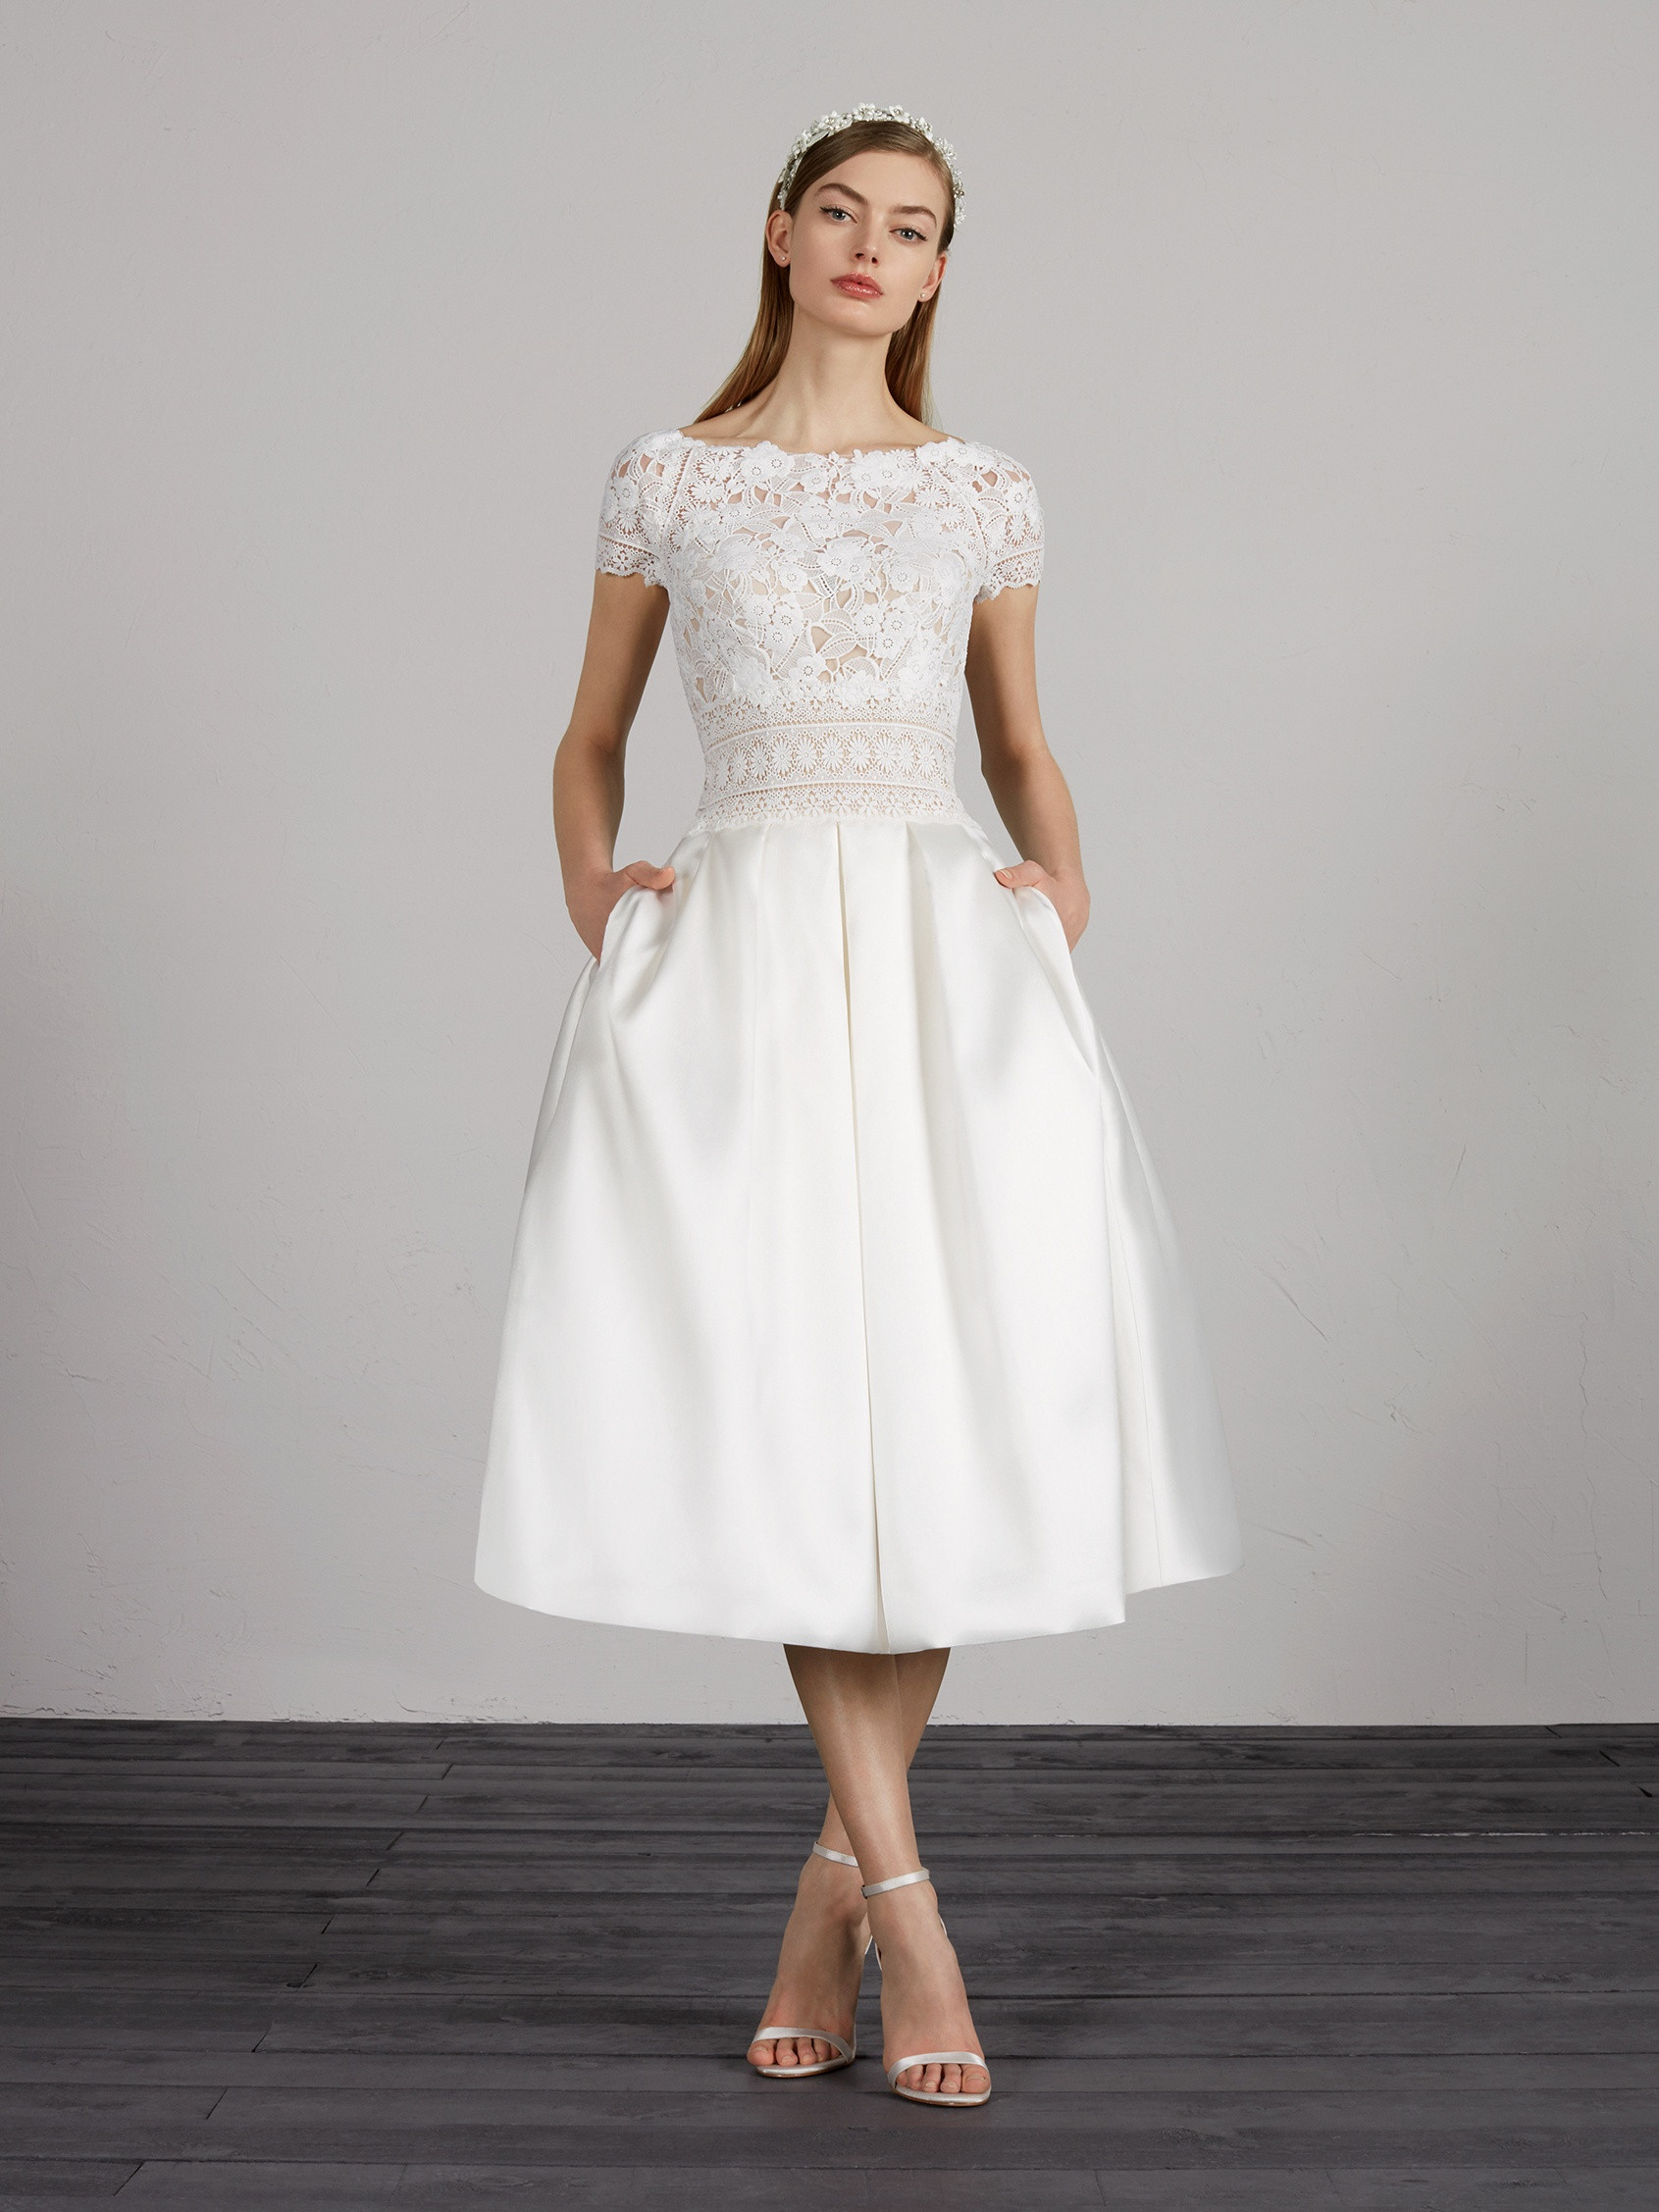 Wedding Dresses Miami.Mikado Wedding Dress With A Short Skirt And Short Sleeves